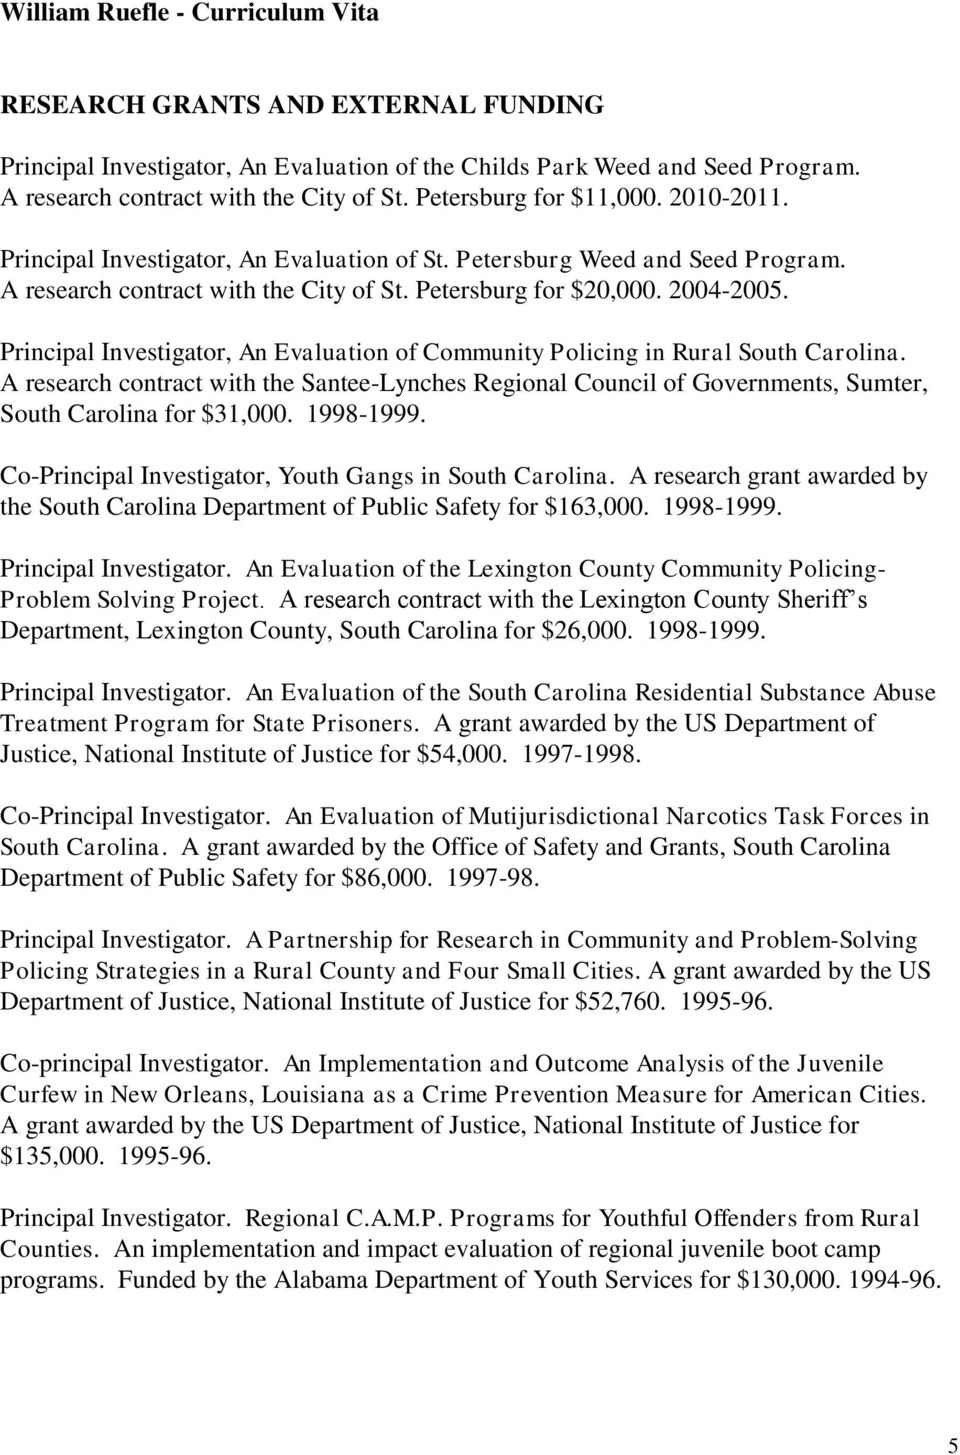 Principal Investigator, An Evaluation of Community Policing in Rural South Carolina. A research contract with the Santee-Lynches Regional Council of Governments, Sumter, South Carolina for $31,000.